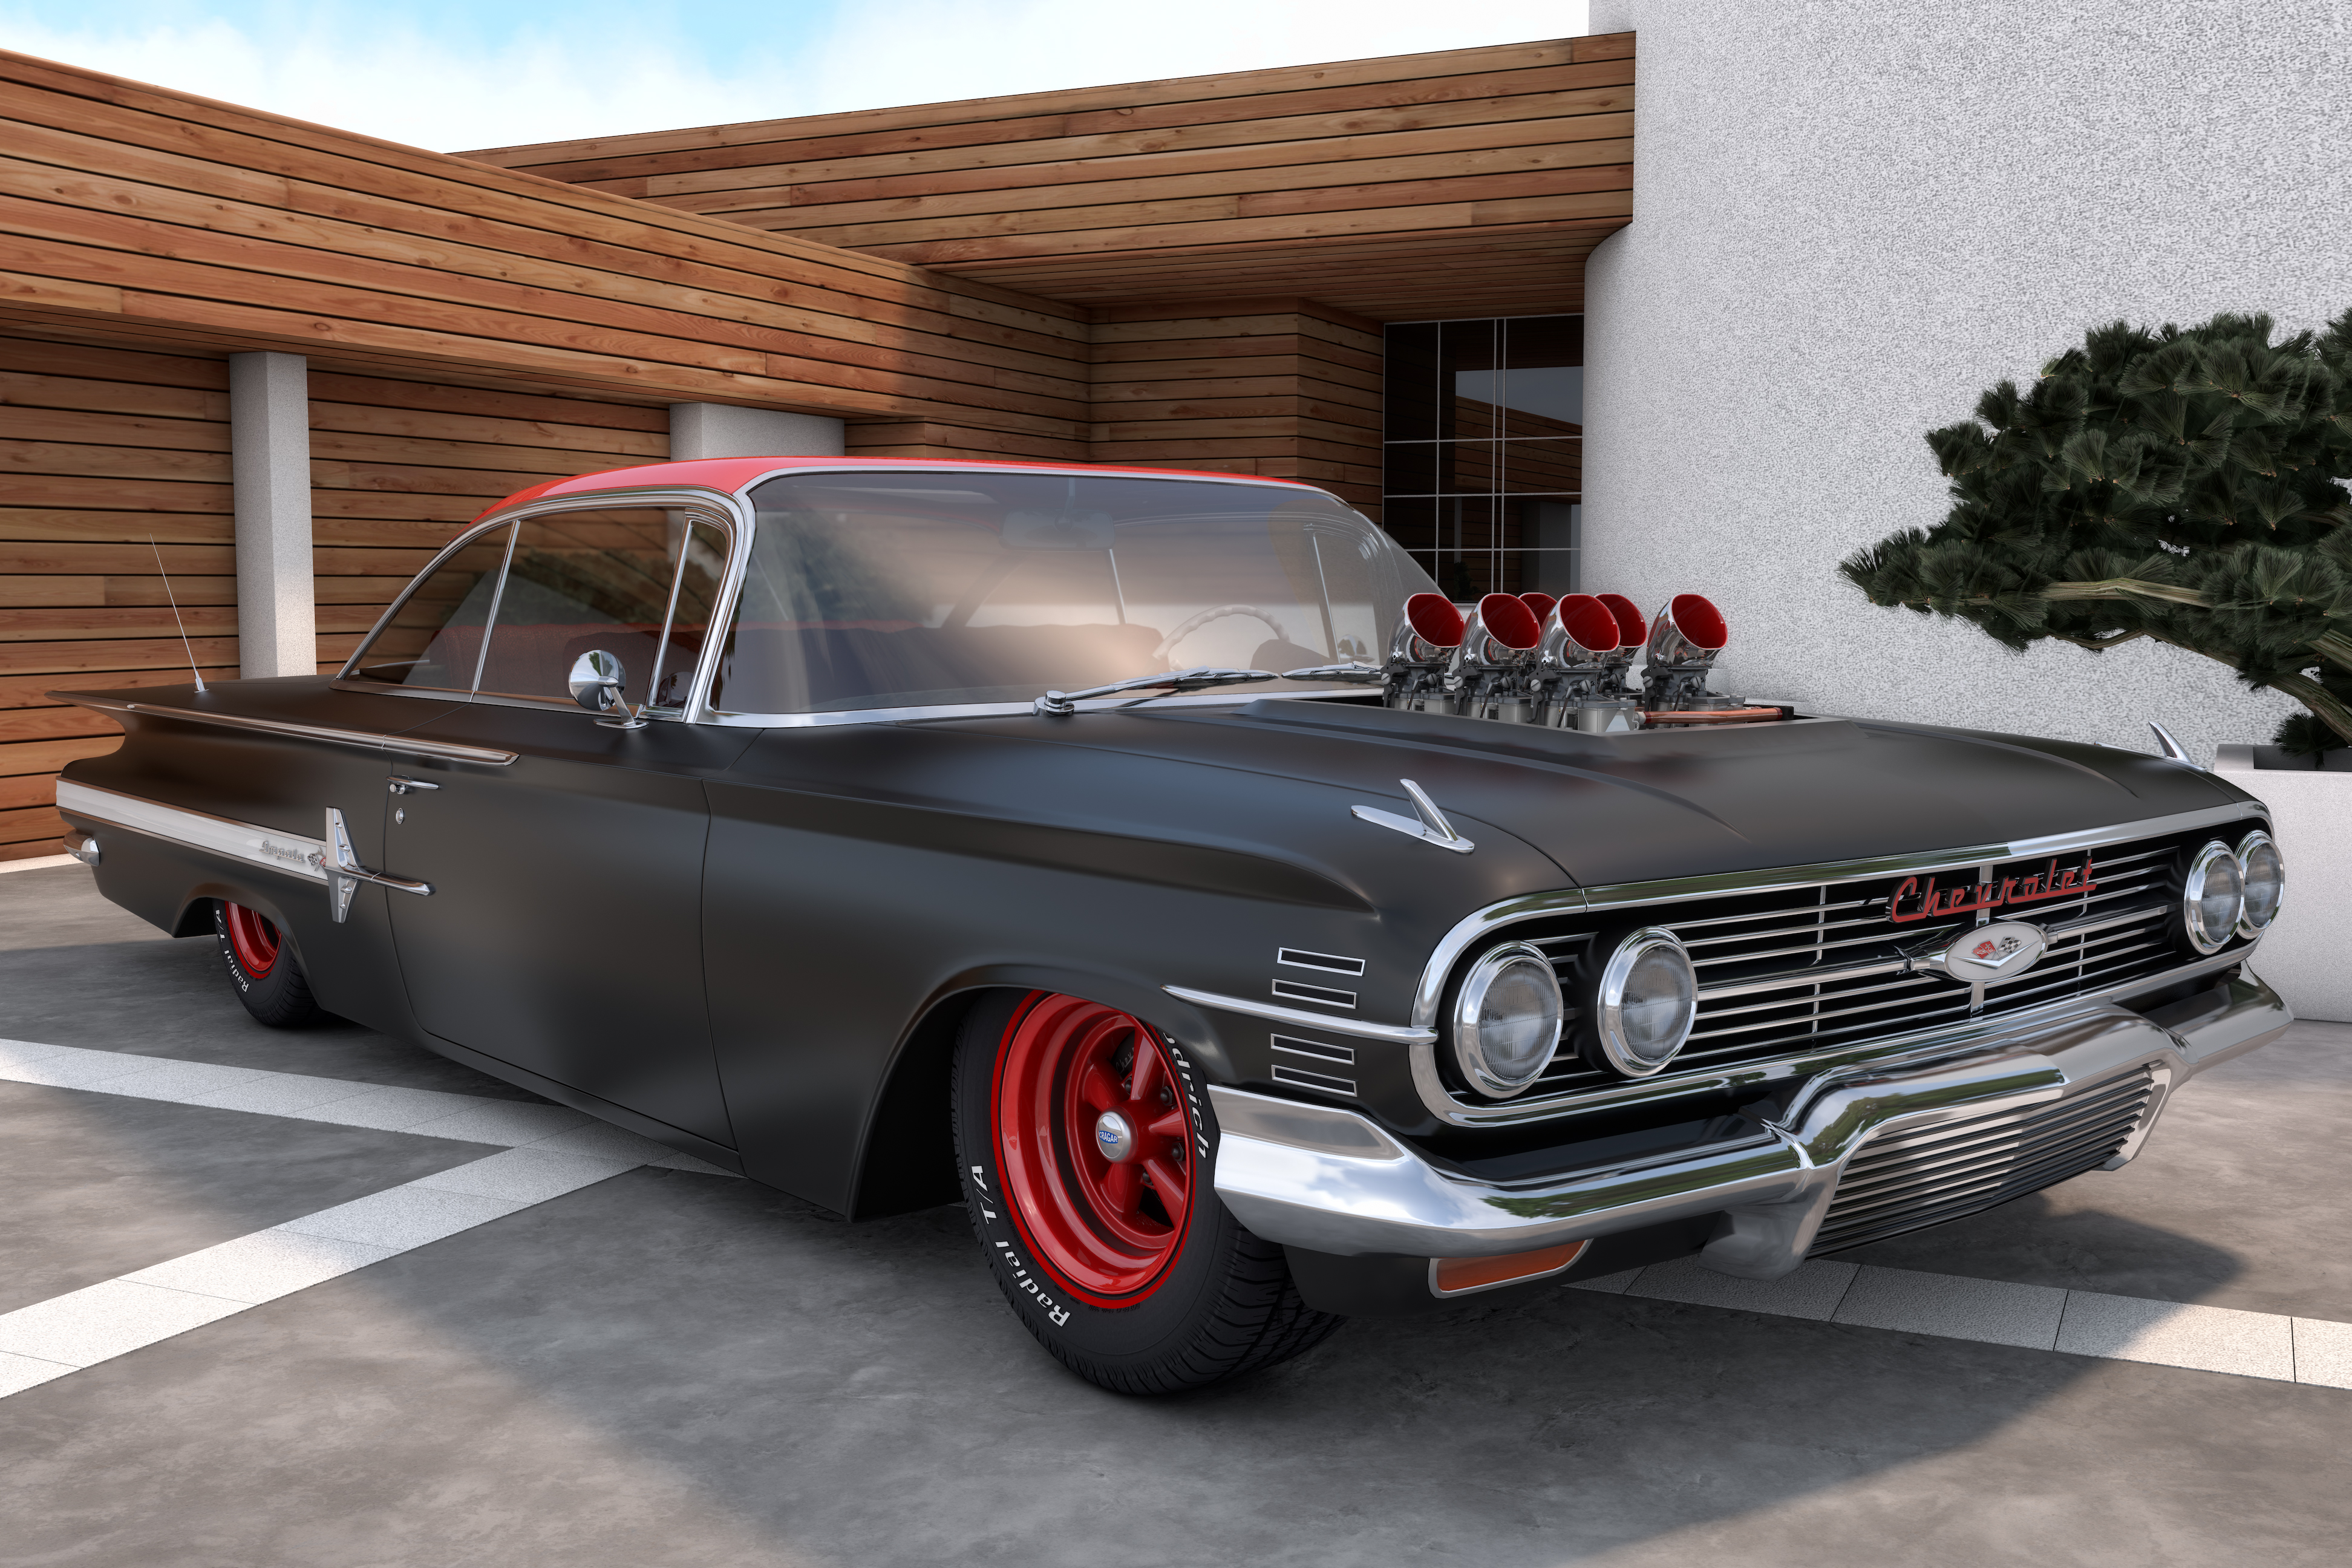 Info additionally Chevrolet Impala 1966 in addition 1958 Chevrolet Impala together with 2018 Chevrolet Impala moreover 1967 Chevrolet Impala Ss S Match 396 Ac C 34. on used chevrolet impalas for sale